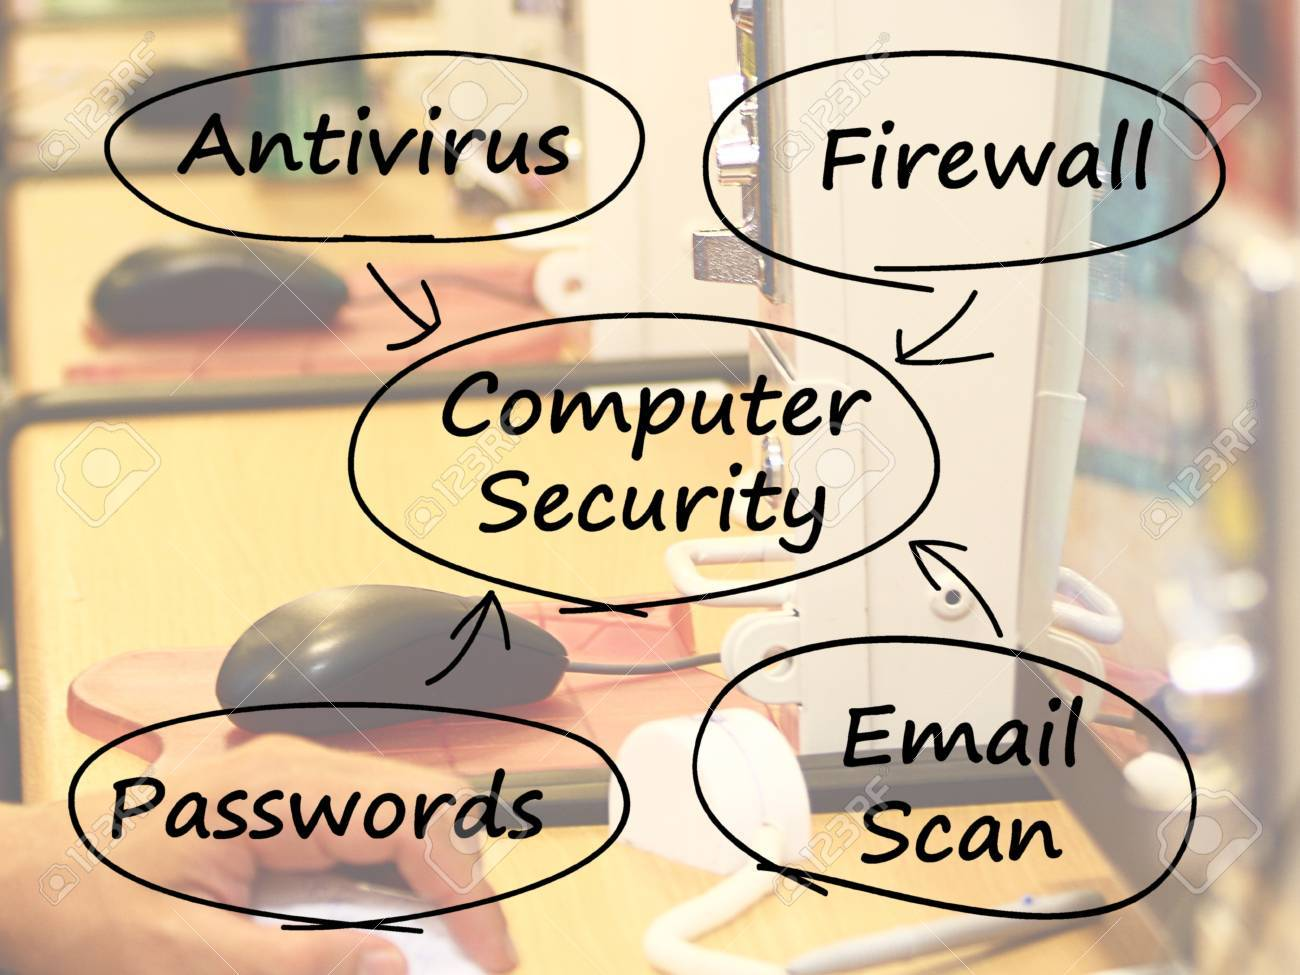 Computer Security Diagram Showing Laptop Internet Safety Stock Photo - 13480532